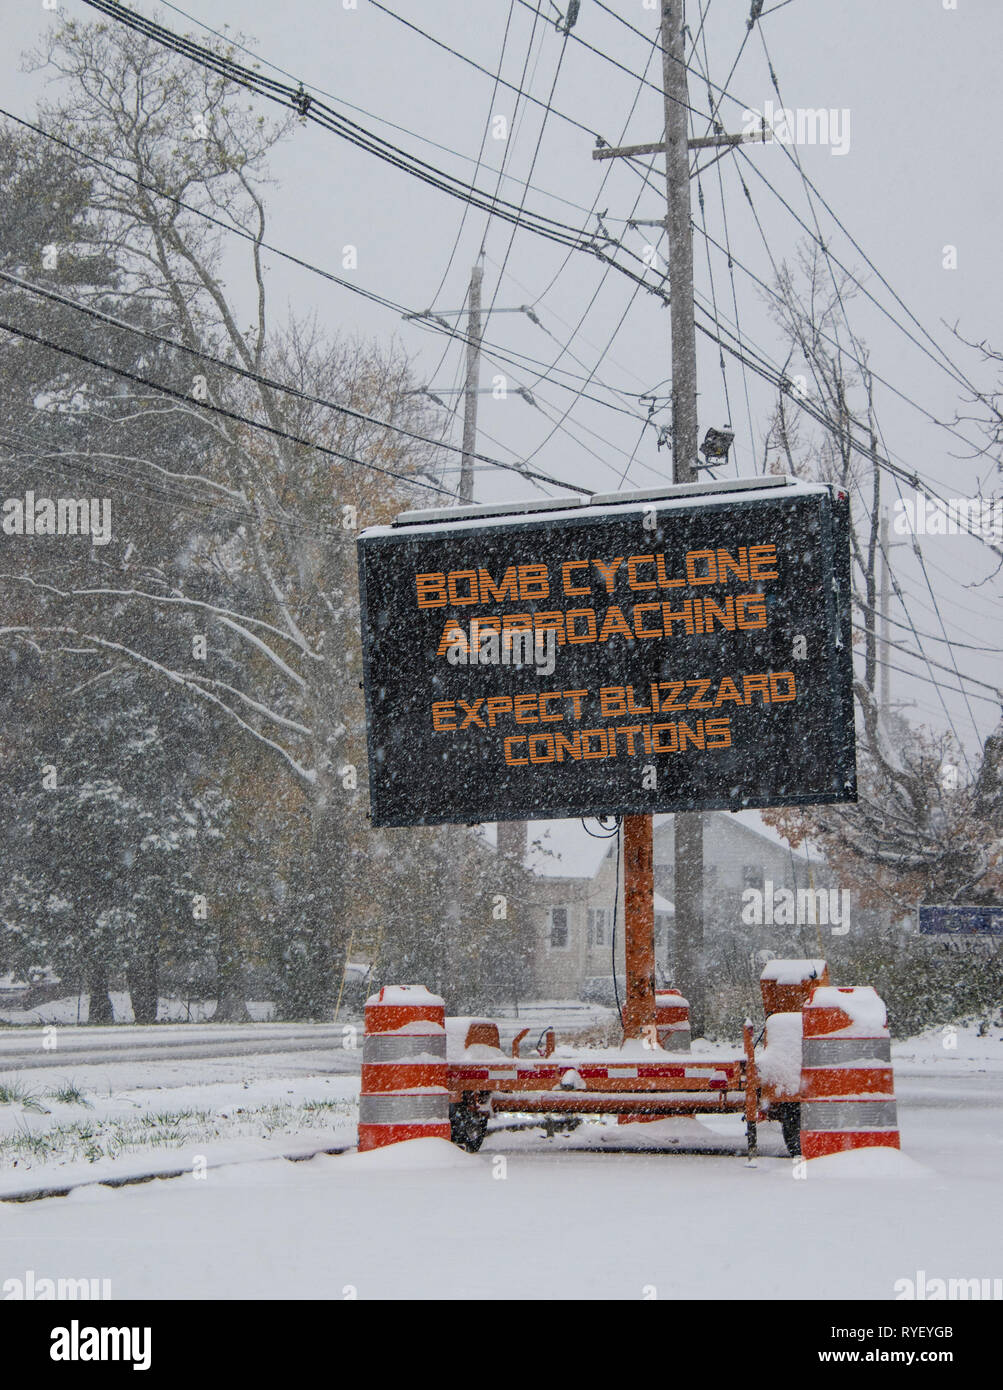 Electric road traffic mobile sign by the side of a snow covered road with snow falling warning of BOMB CYCLONE approaching, expect blizzard conditions - Stock Image